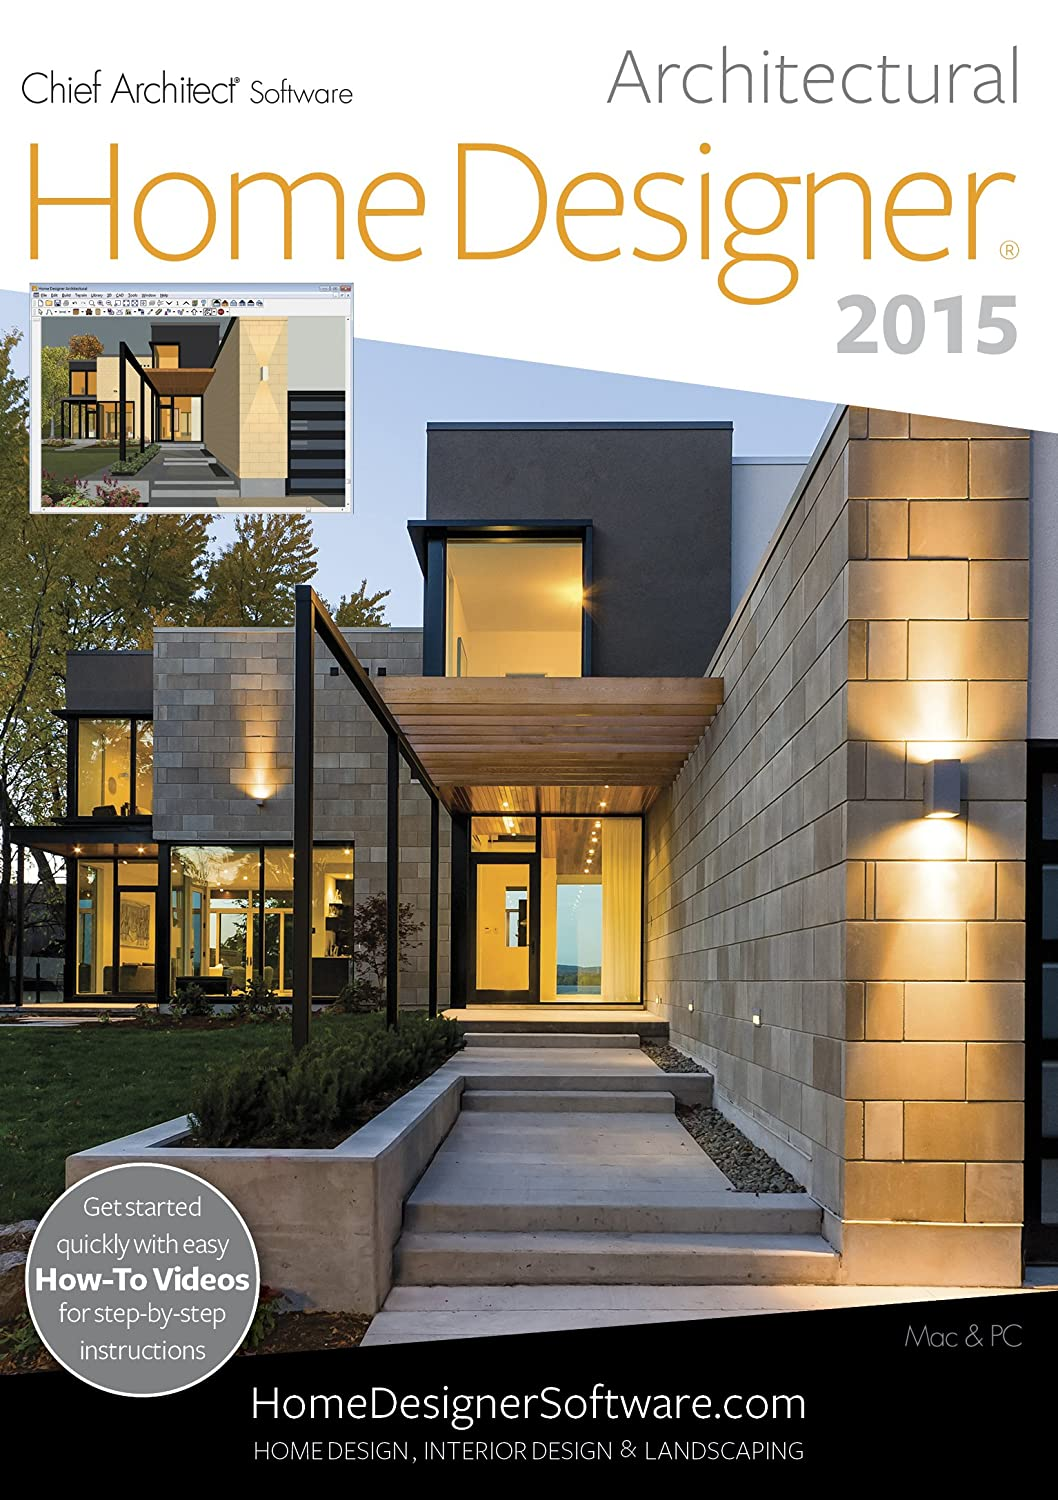 Amazoncom Home Designer Architectural 2015 Download Software